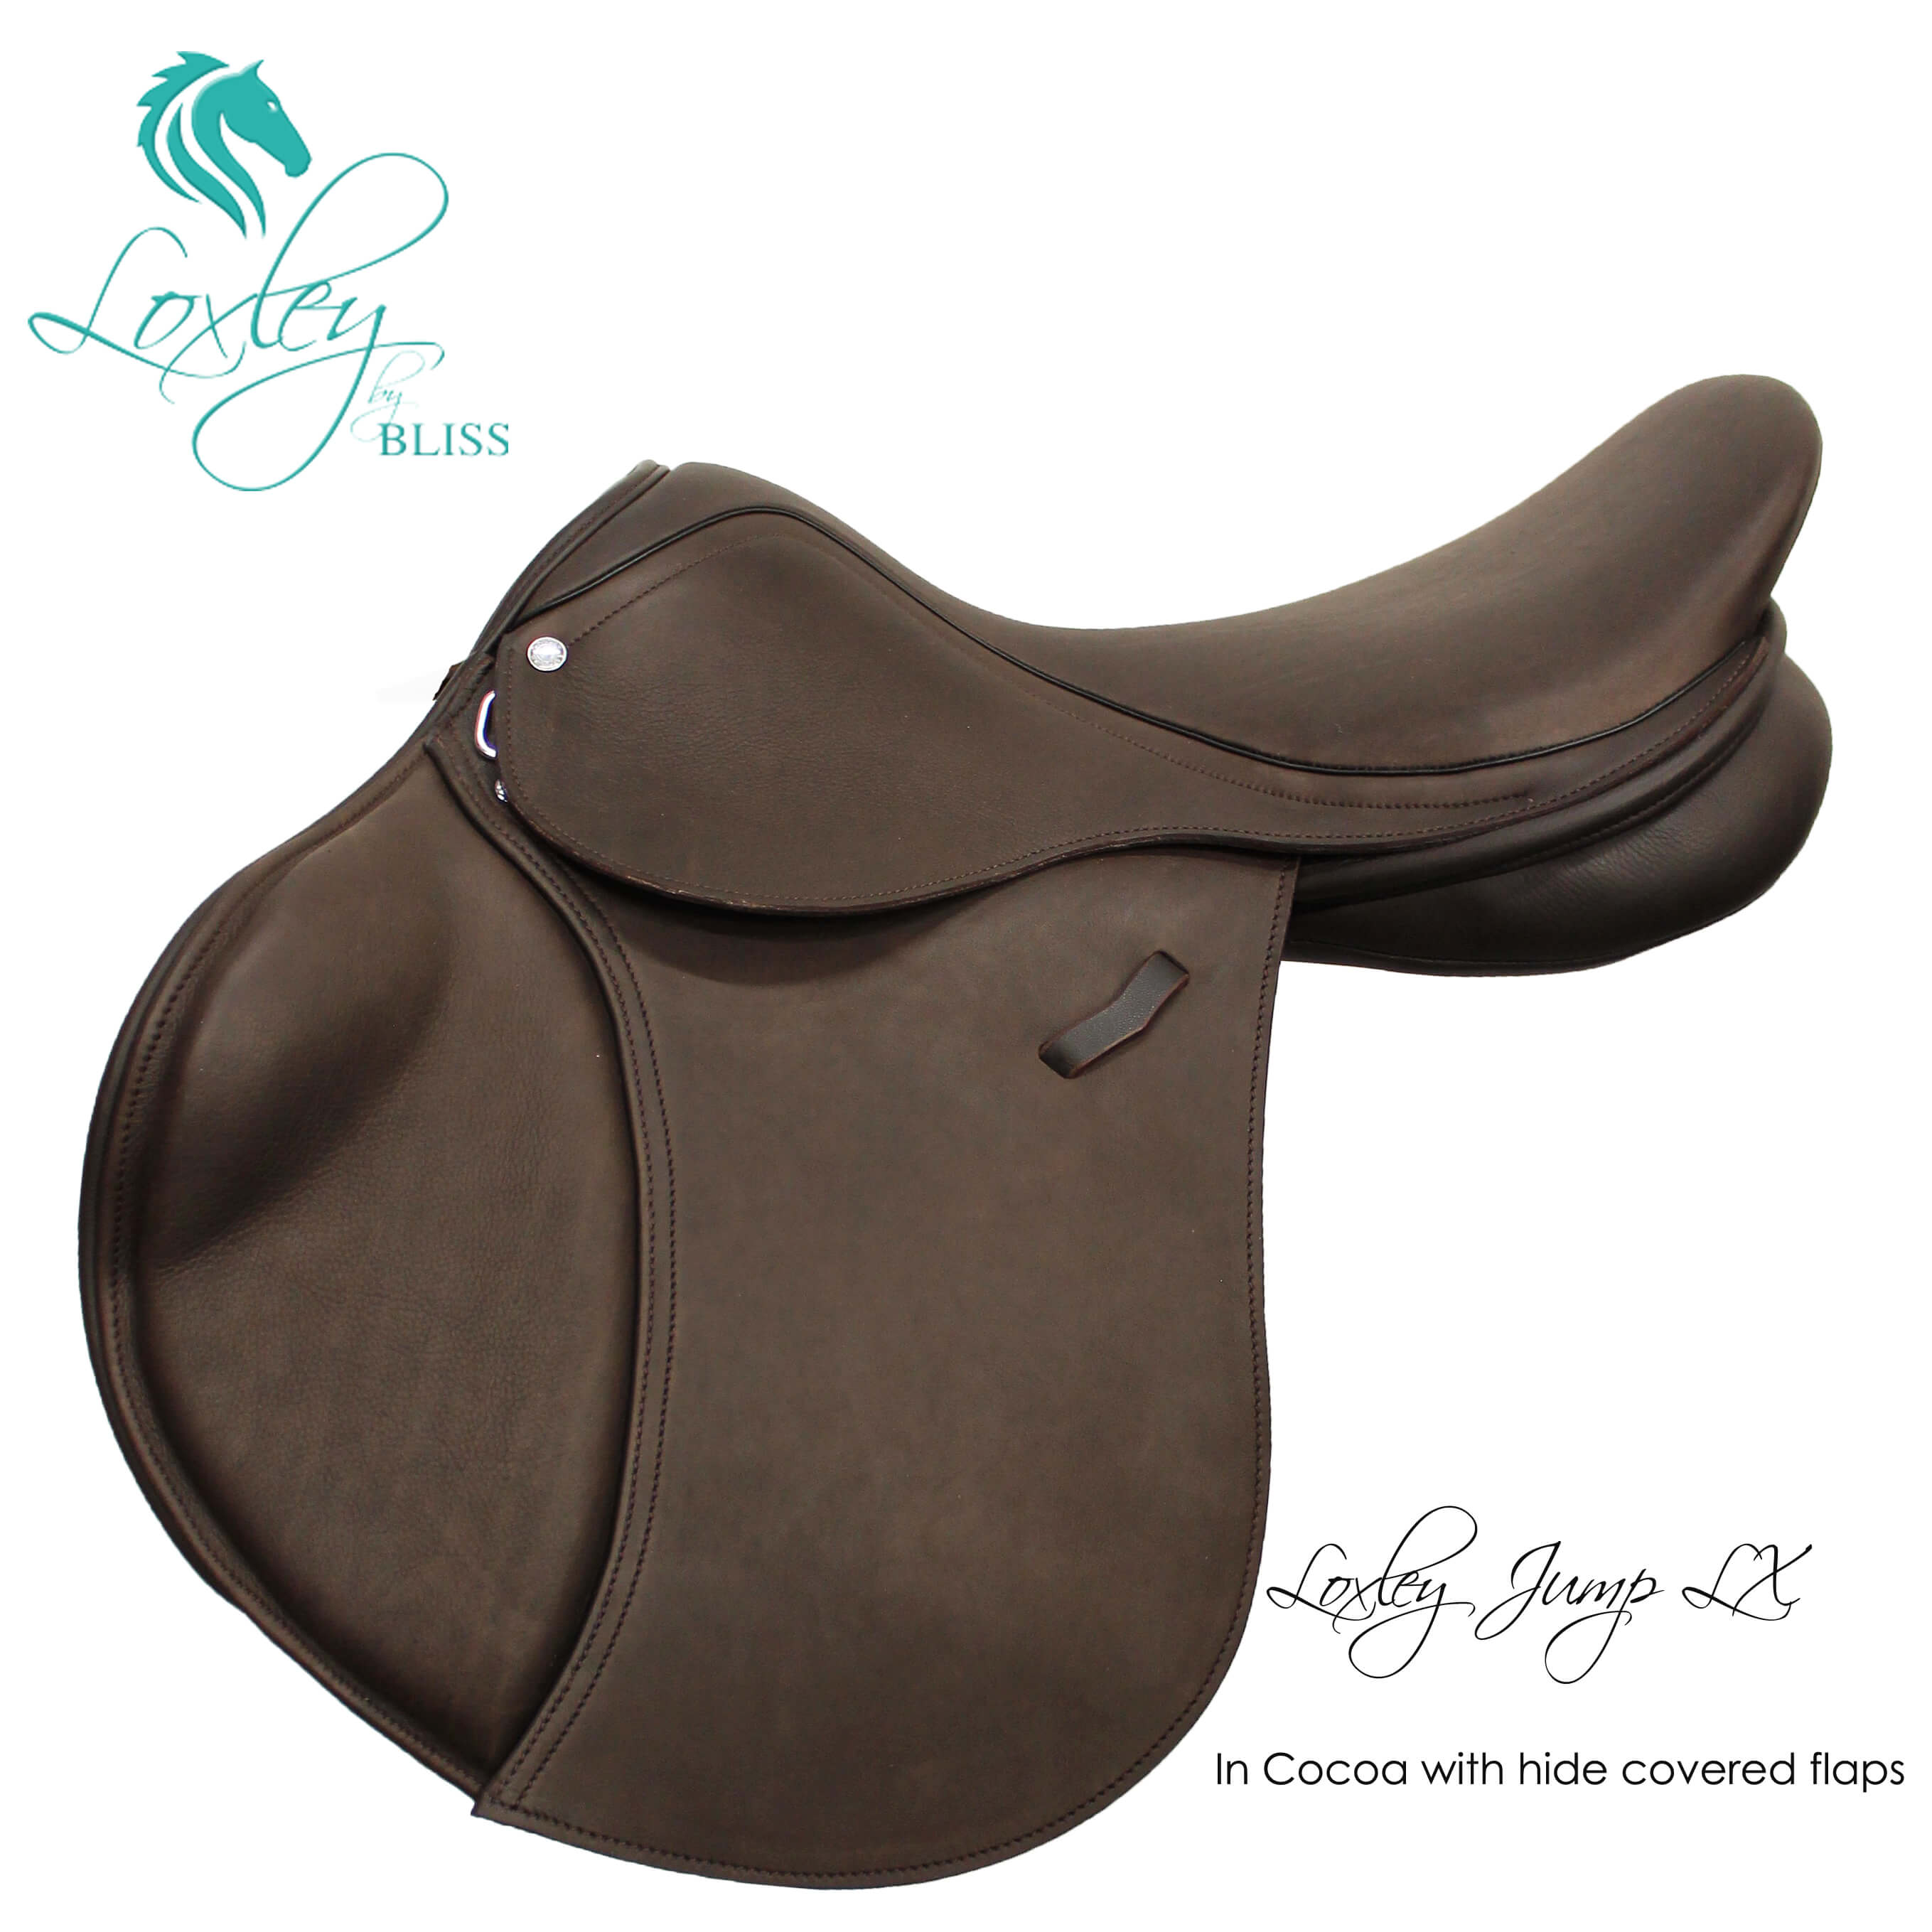 Loxley Jump LX hide covered cocoa